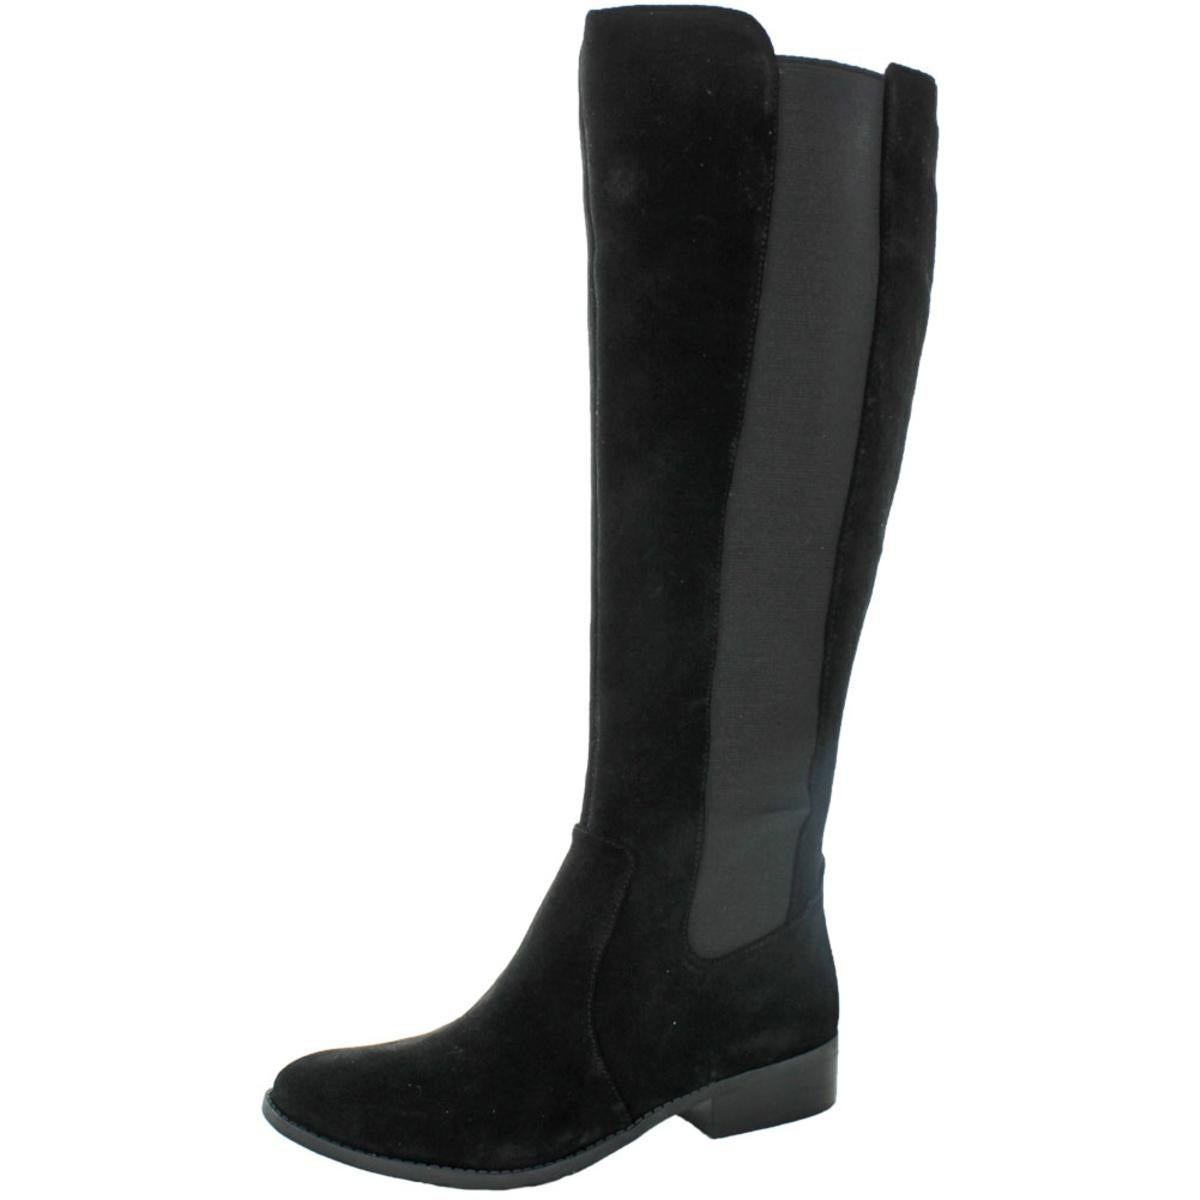 high quality guarantee great deals on fashion run shoes Jessica Simpson Womens Riding Boots Wide Calf Knee-High